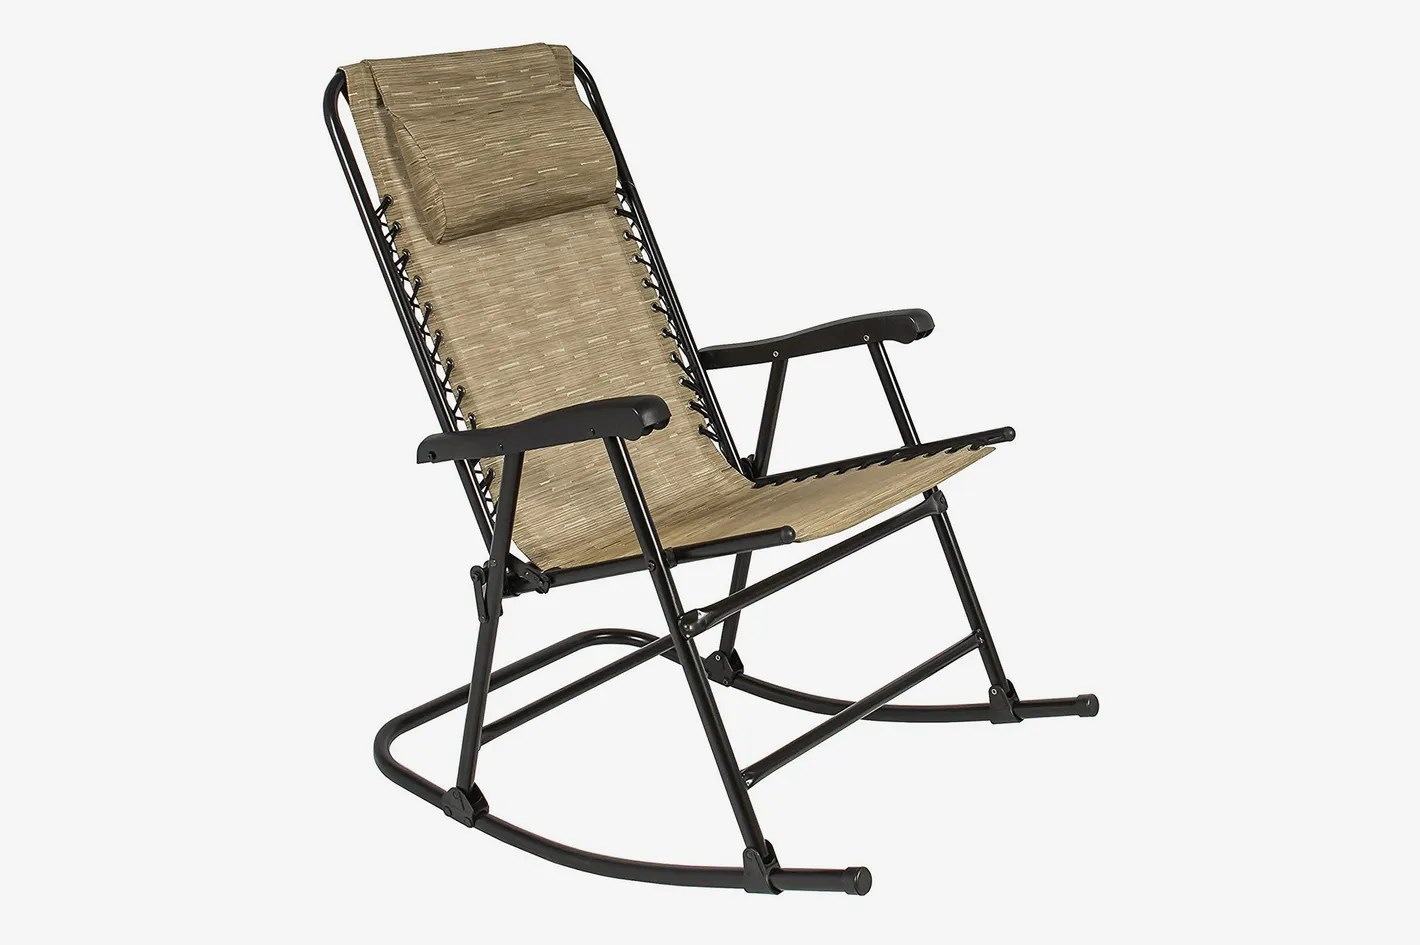 hard plastic outdoor rocking chairs wooden circle chair the 15 best 2018 choice products folding